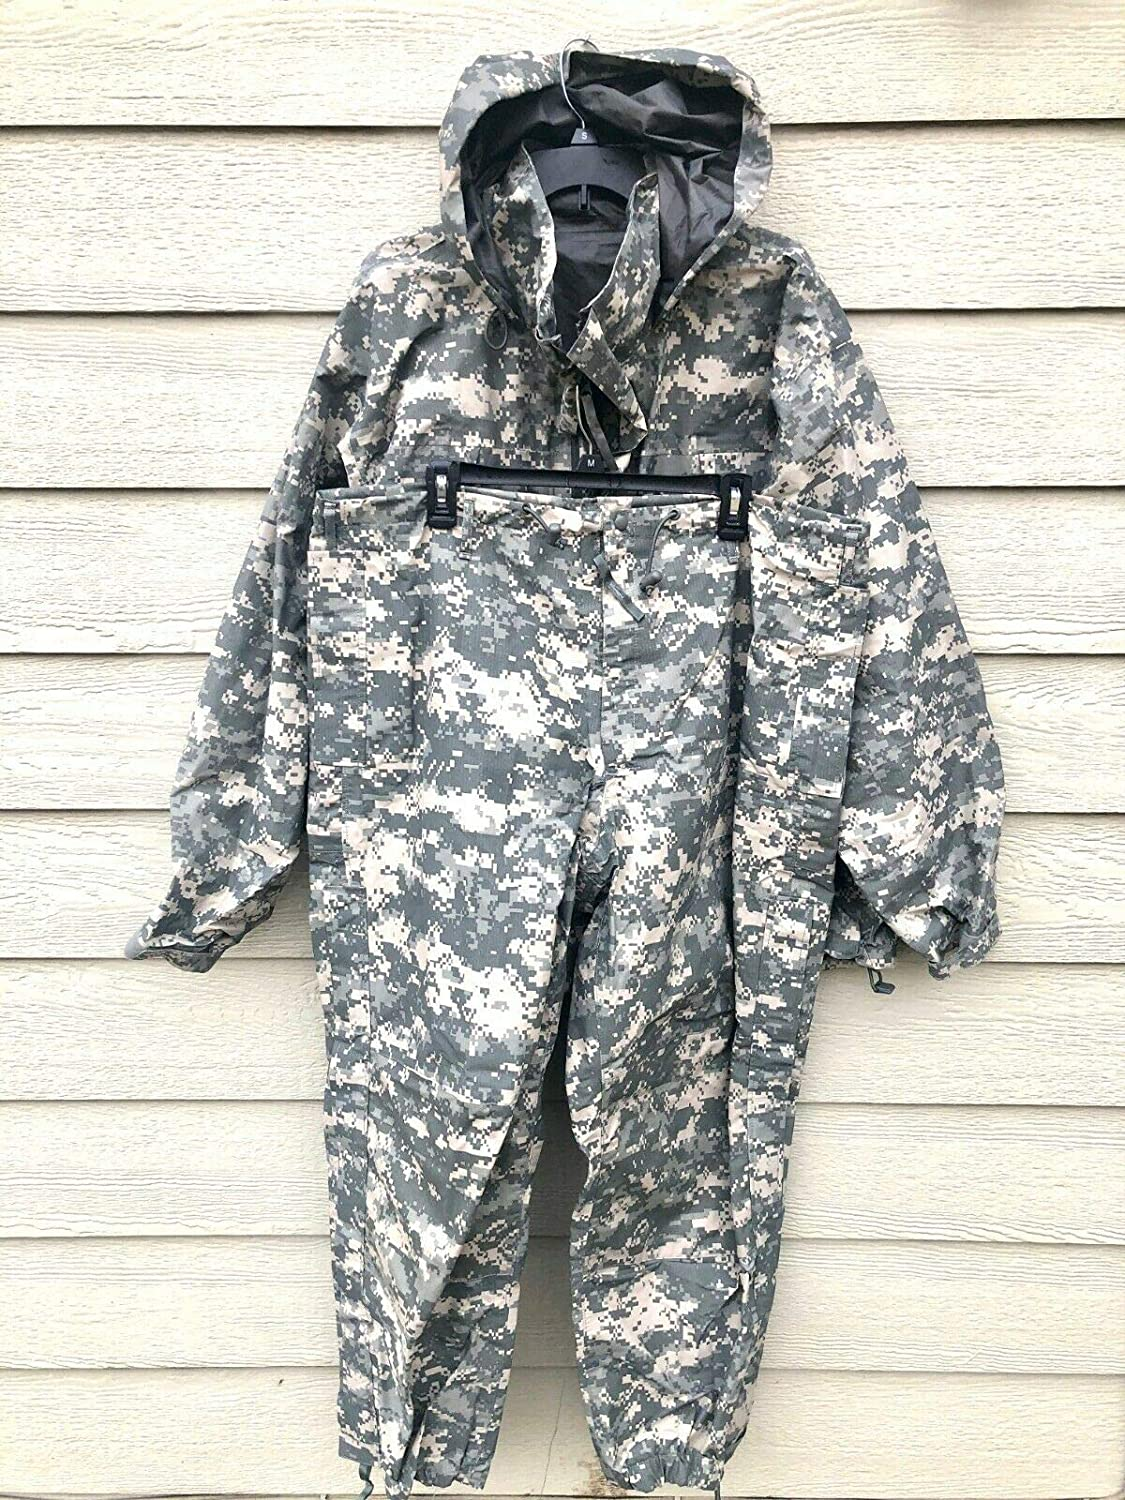 Us Army Issue Ecwcs Gen III Level 6 Gore Tex Acu Digital Extreme Cold/Wet Weather Set - X-Large Long